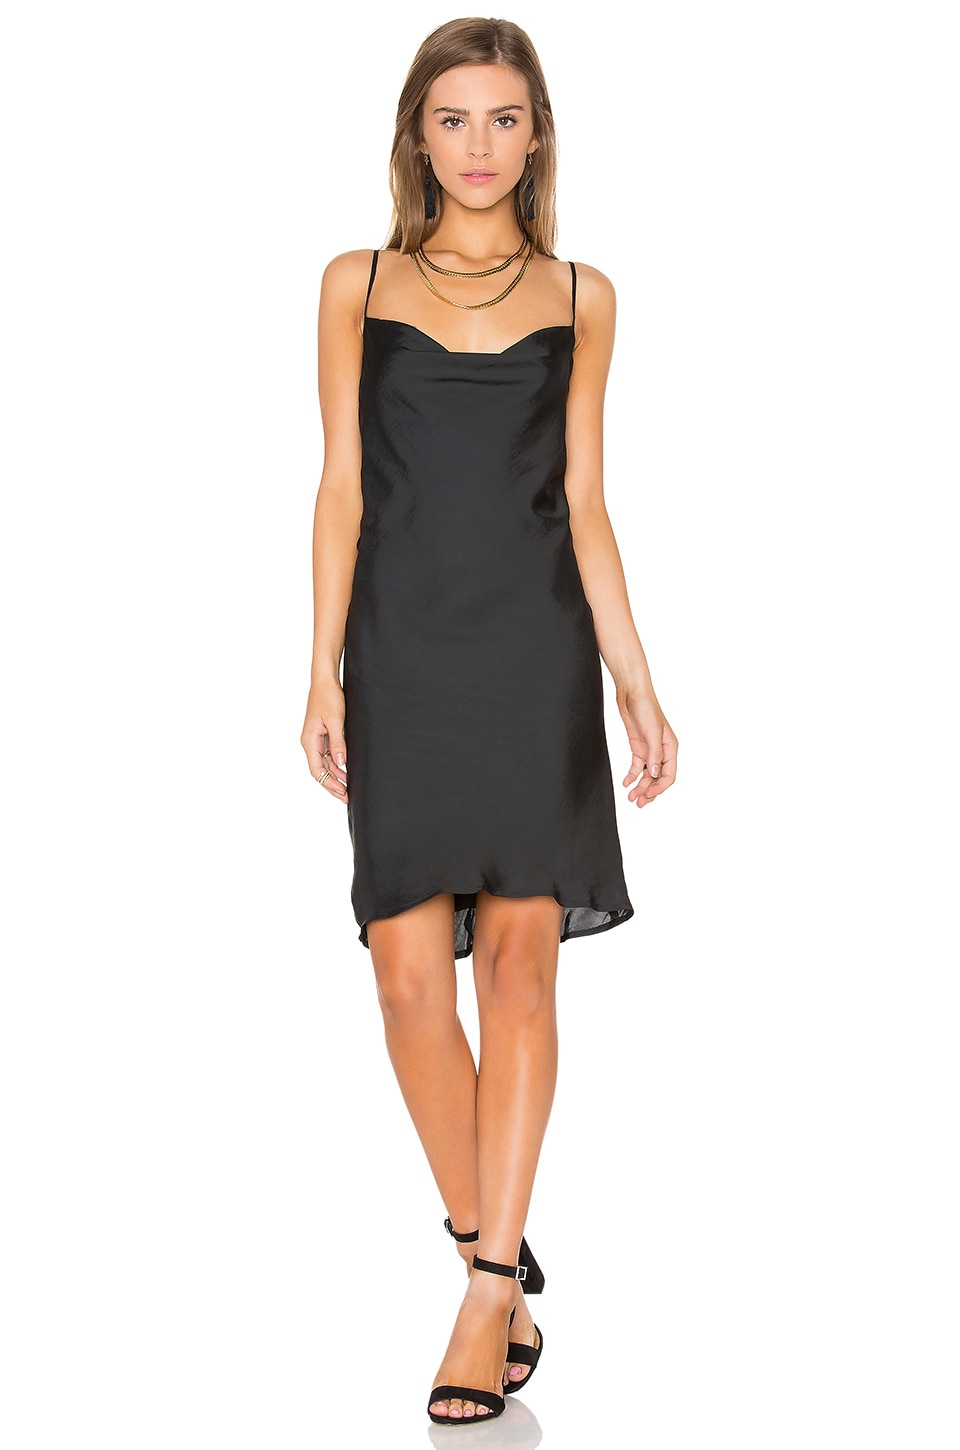 Bardot Strappy Slip Dress in Black